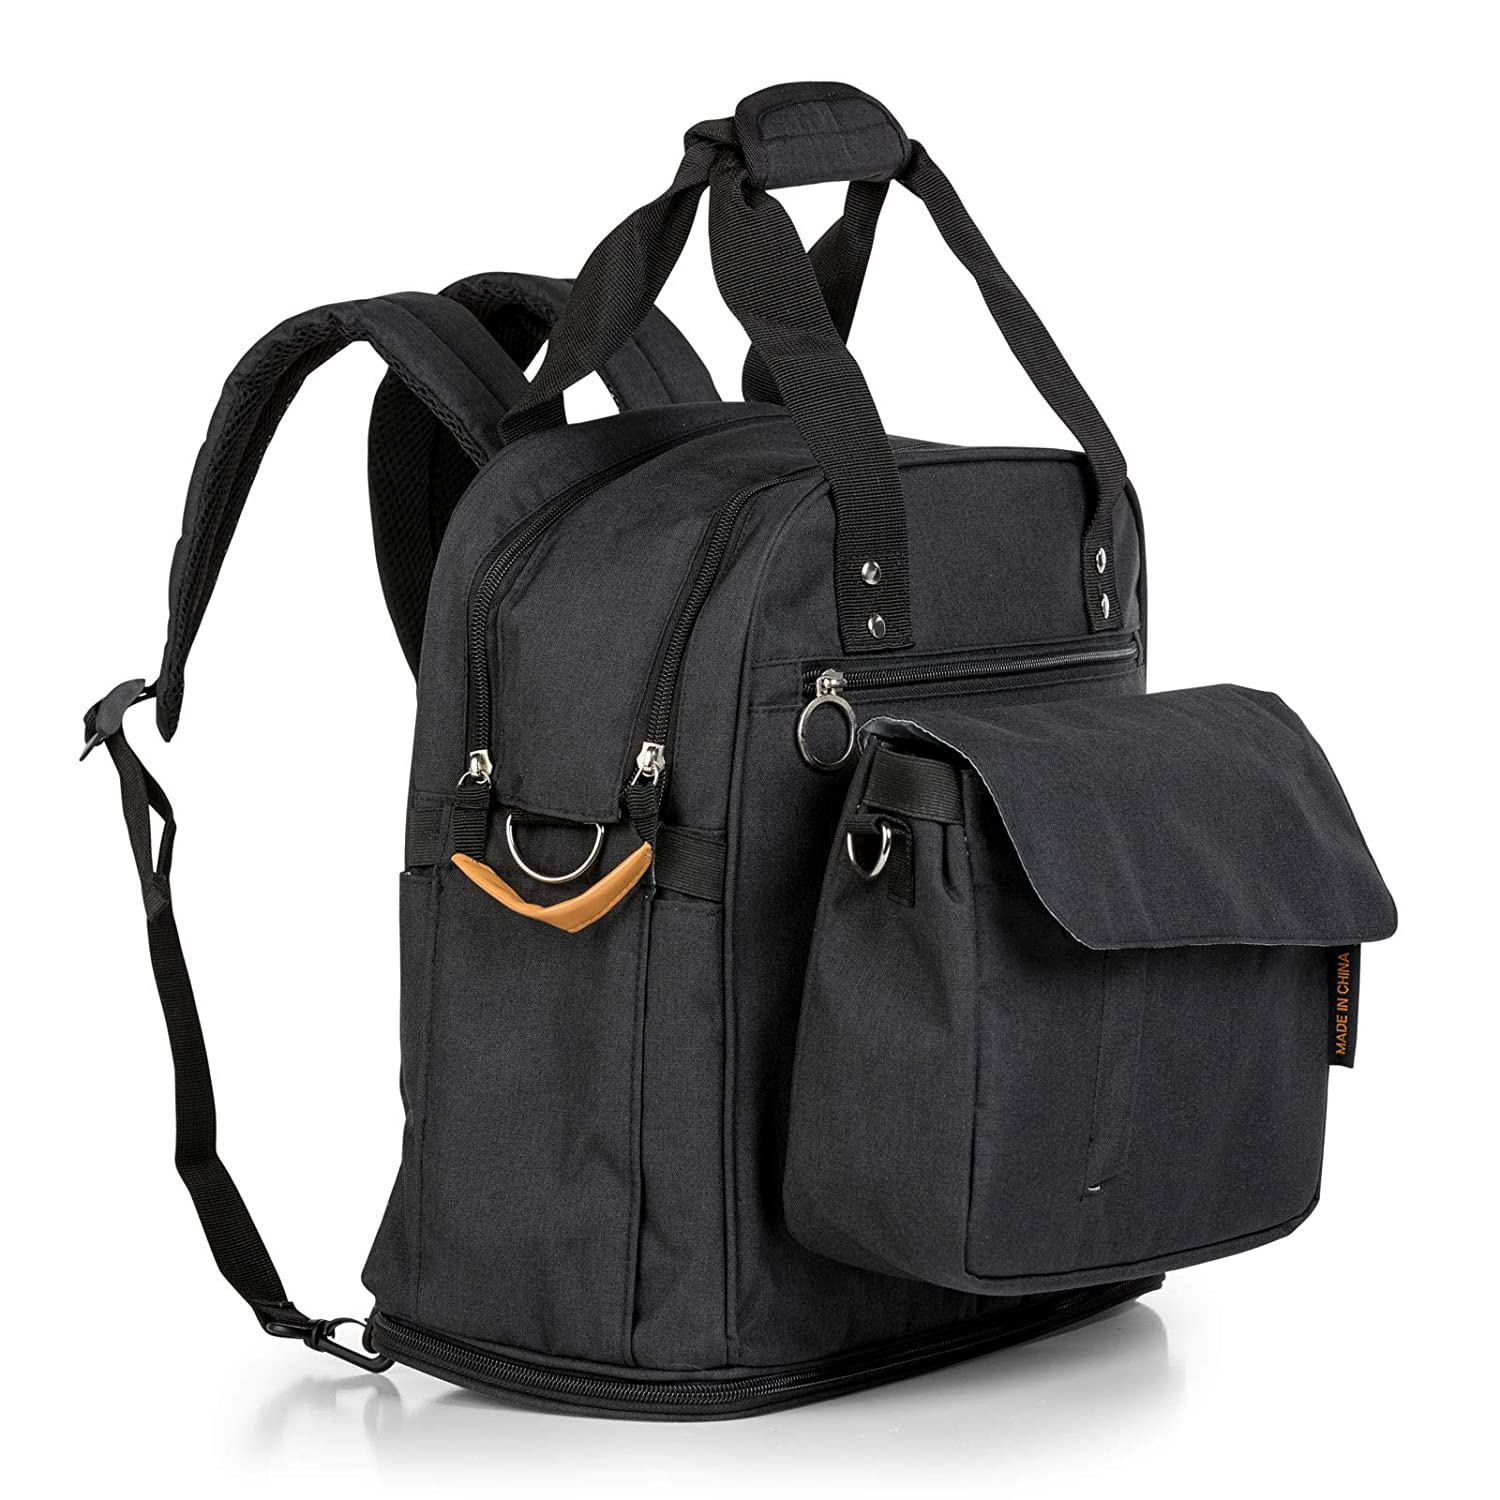 JOJOHUG - Baby Diaper Bag Backpack with Detachable Front Pouch - Large (Black)